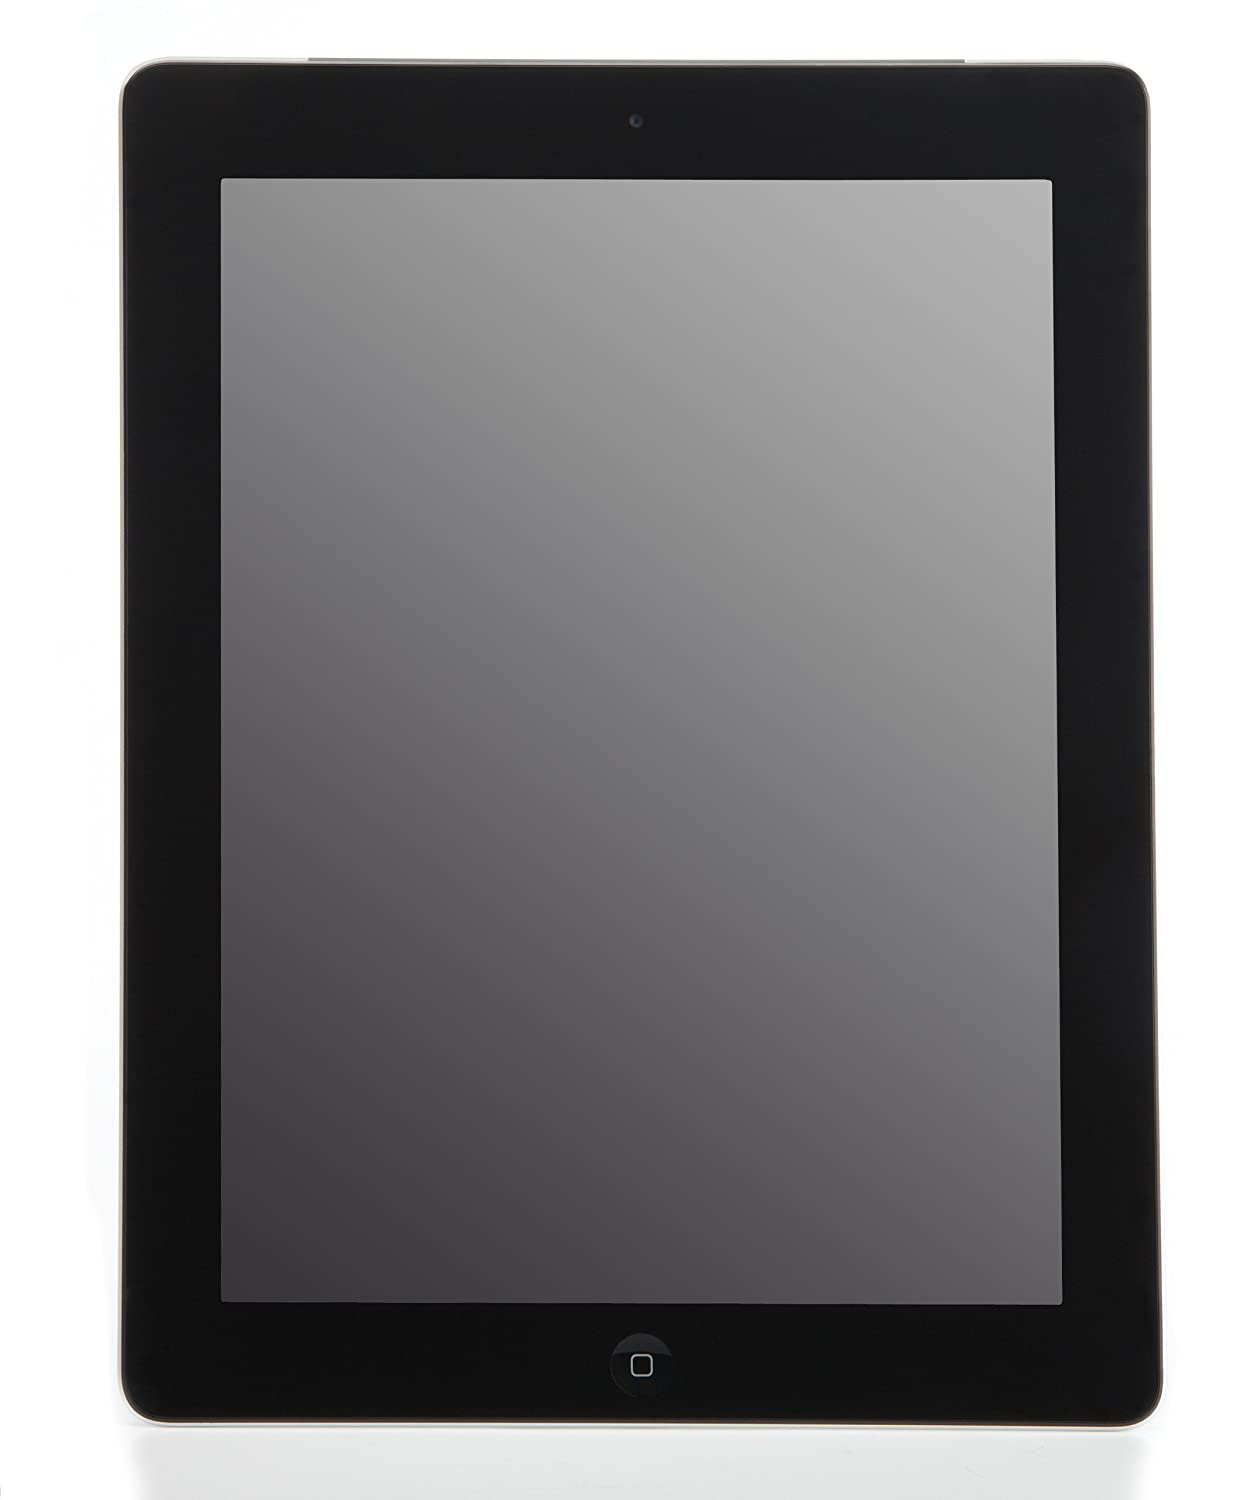 Buy iPad now : iPad 4 current model with Retina display